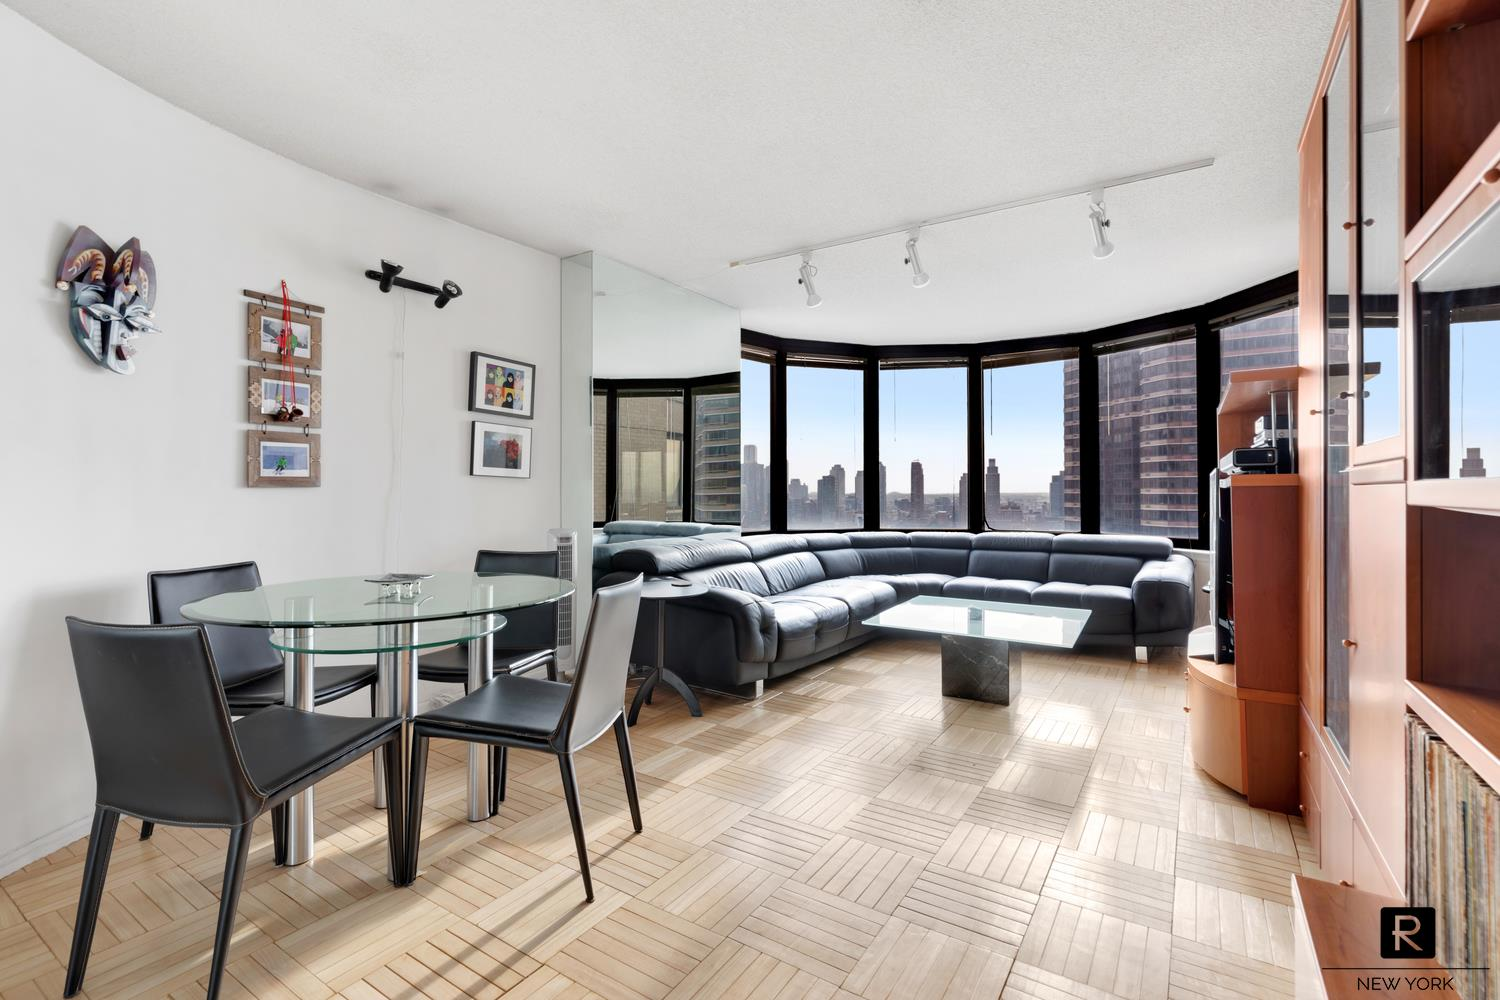 Apartment for sale at 330 East 38th Street, Apt 24-L